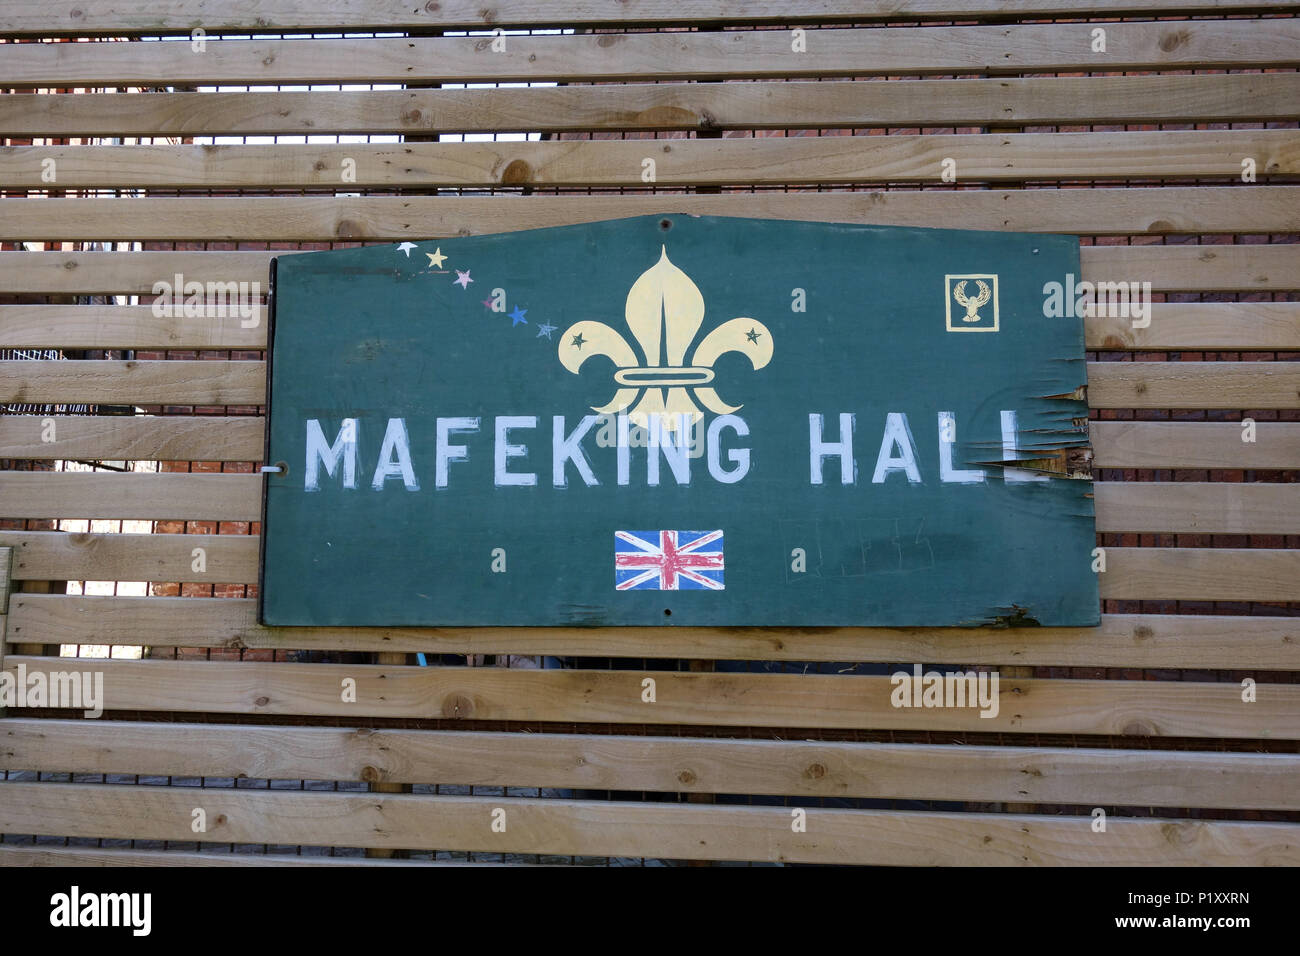 Weathered sign outside a scout hut called Mafeking Hall. - Stock Image